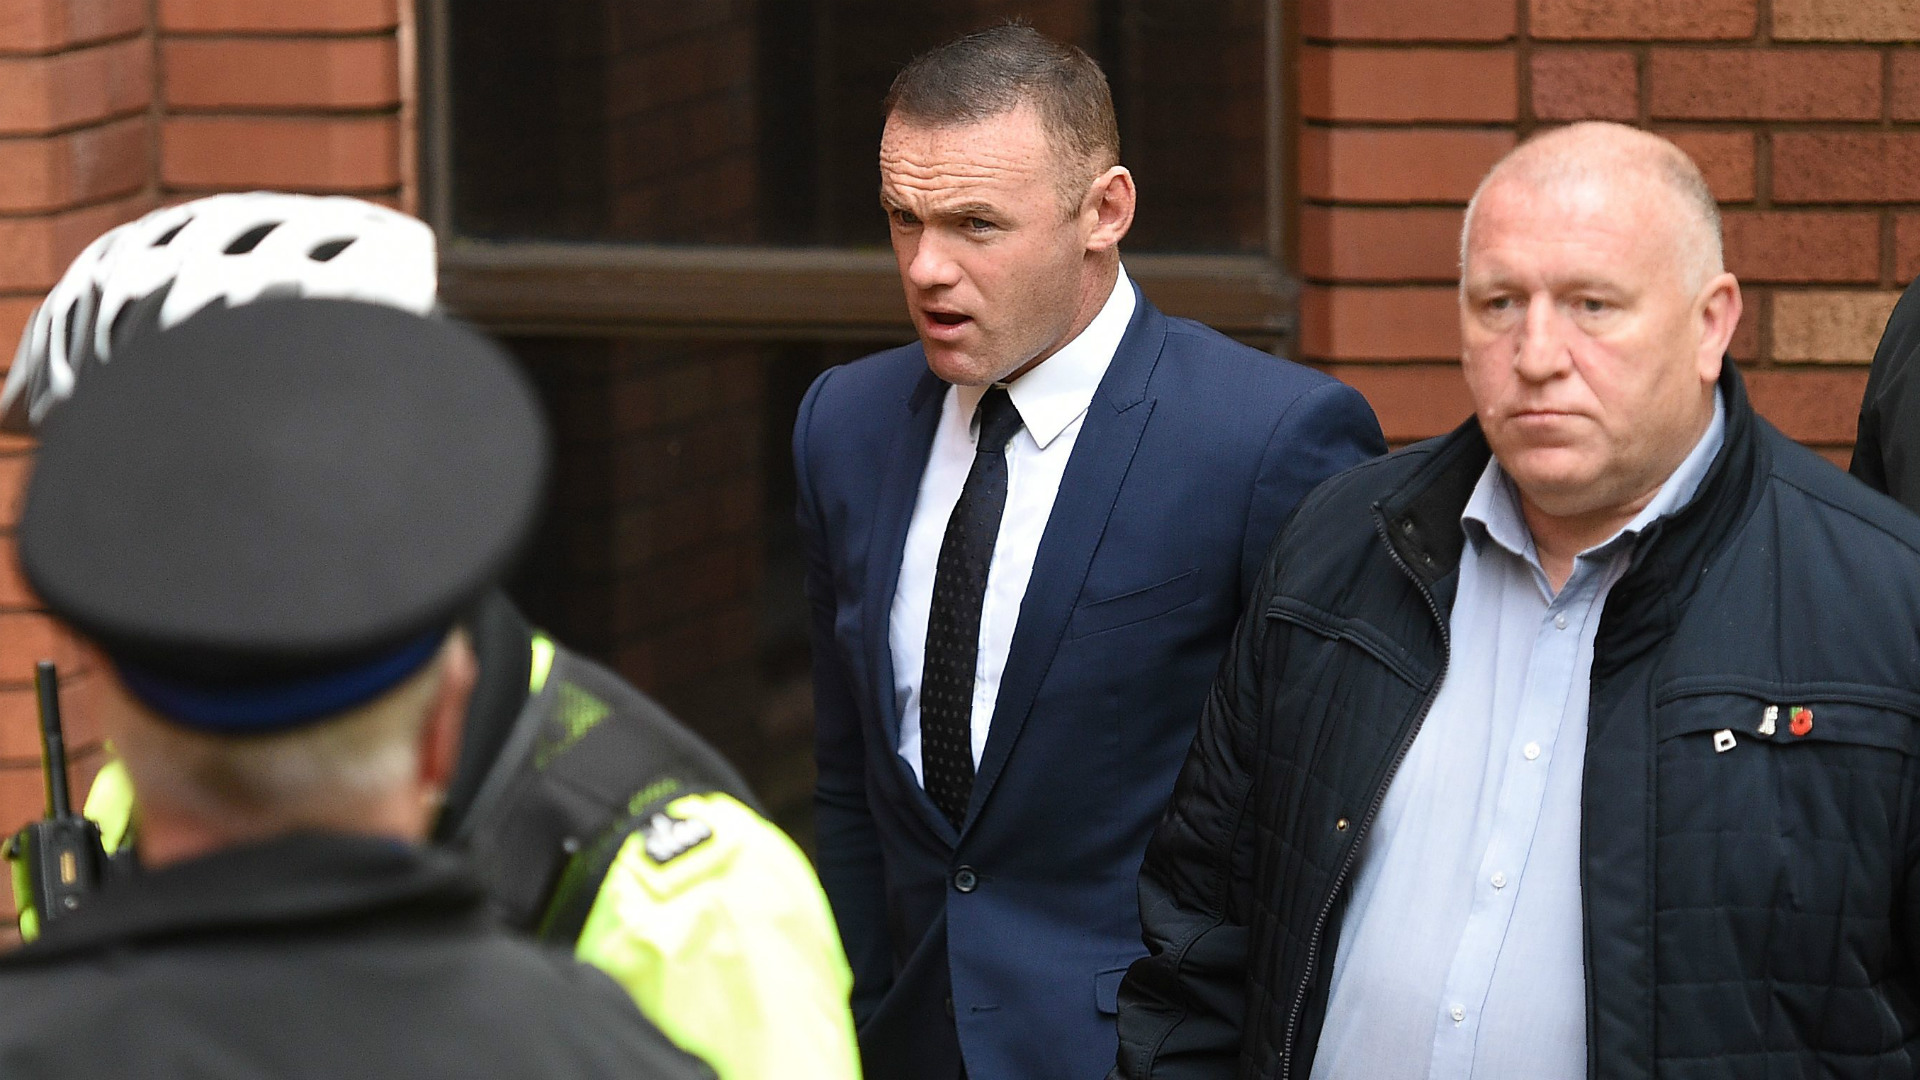 'I've done nothing wrong' says Wayne Rooney car-sharer